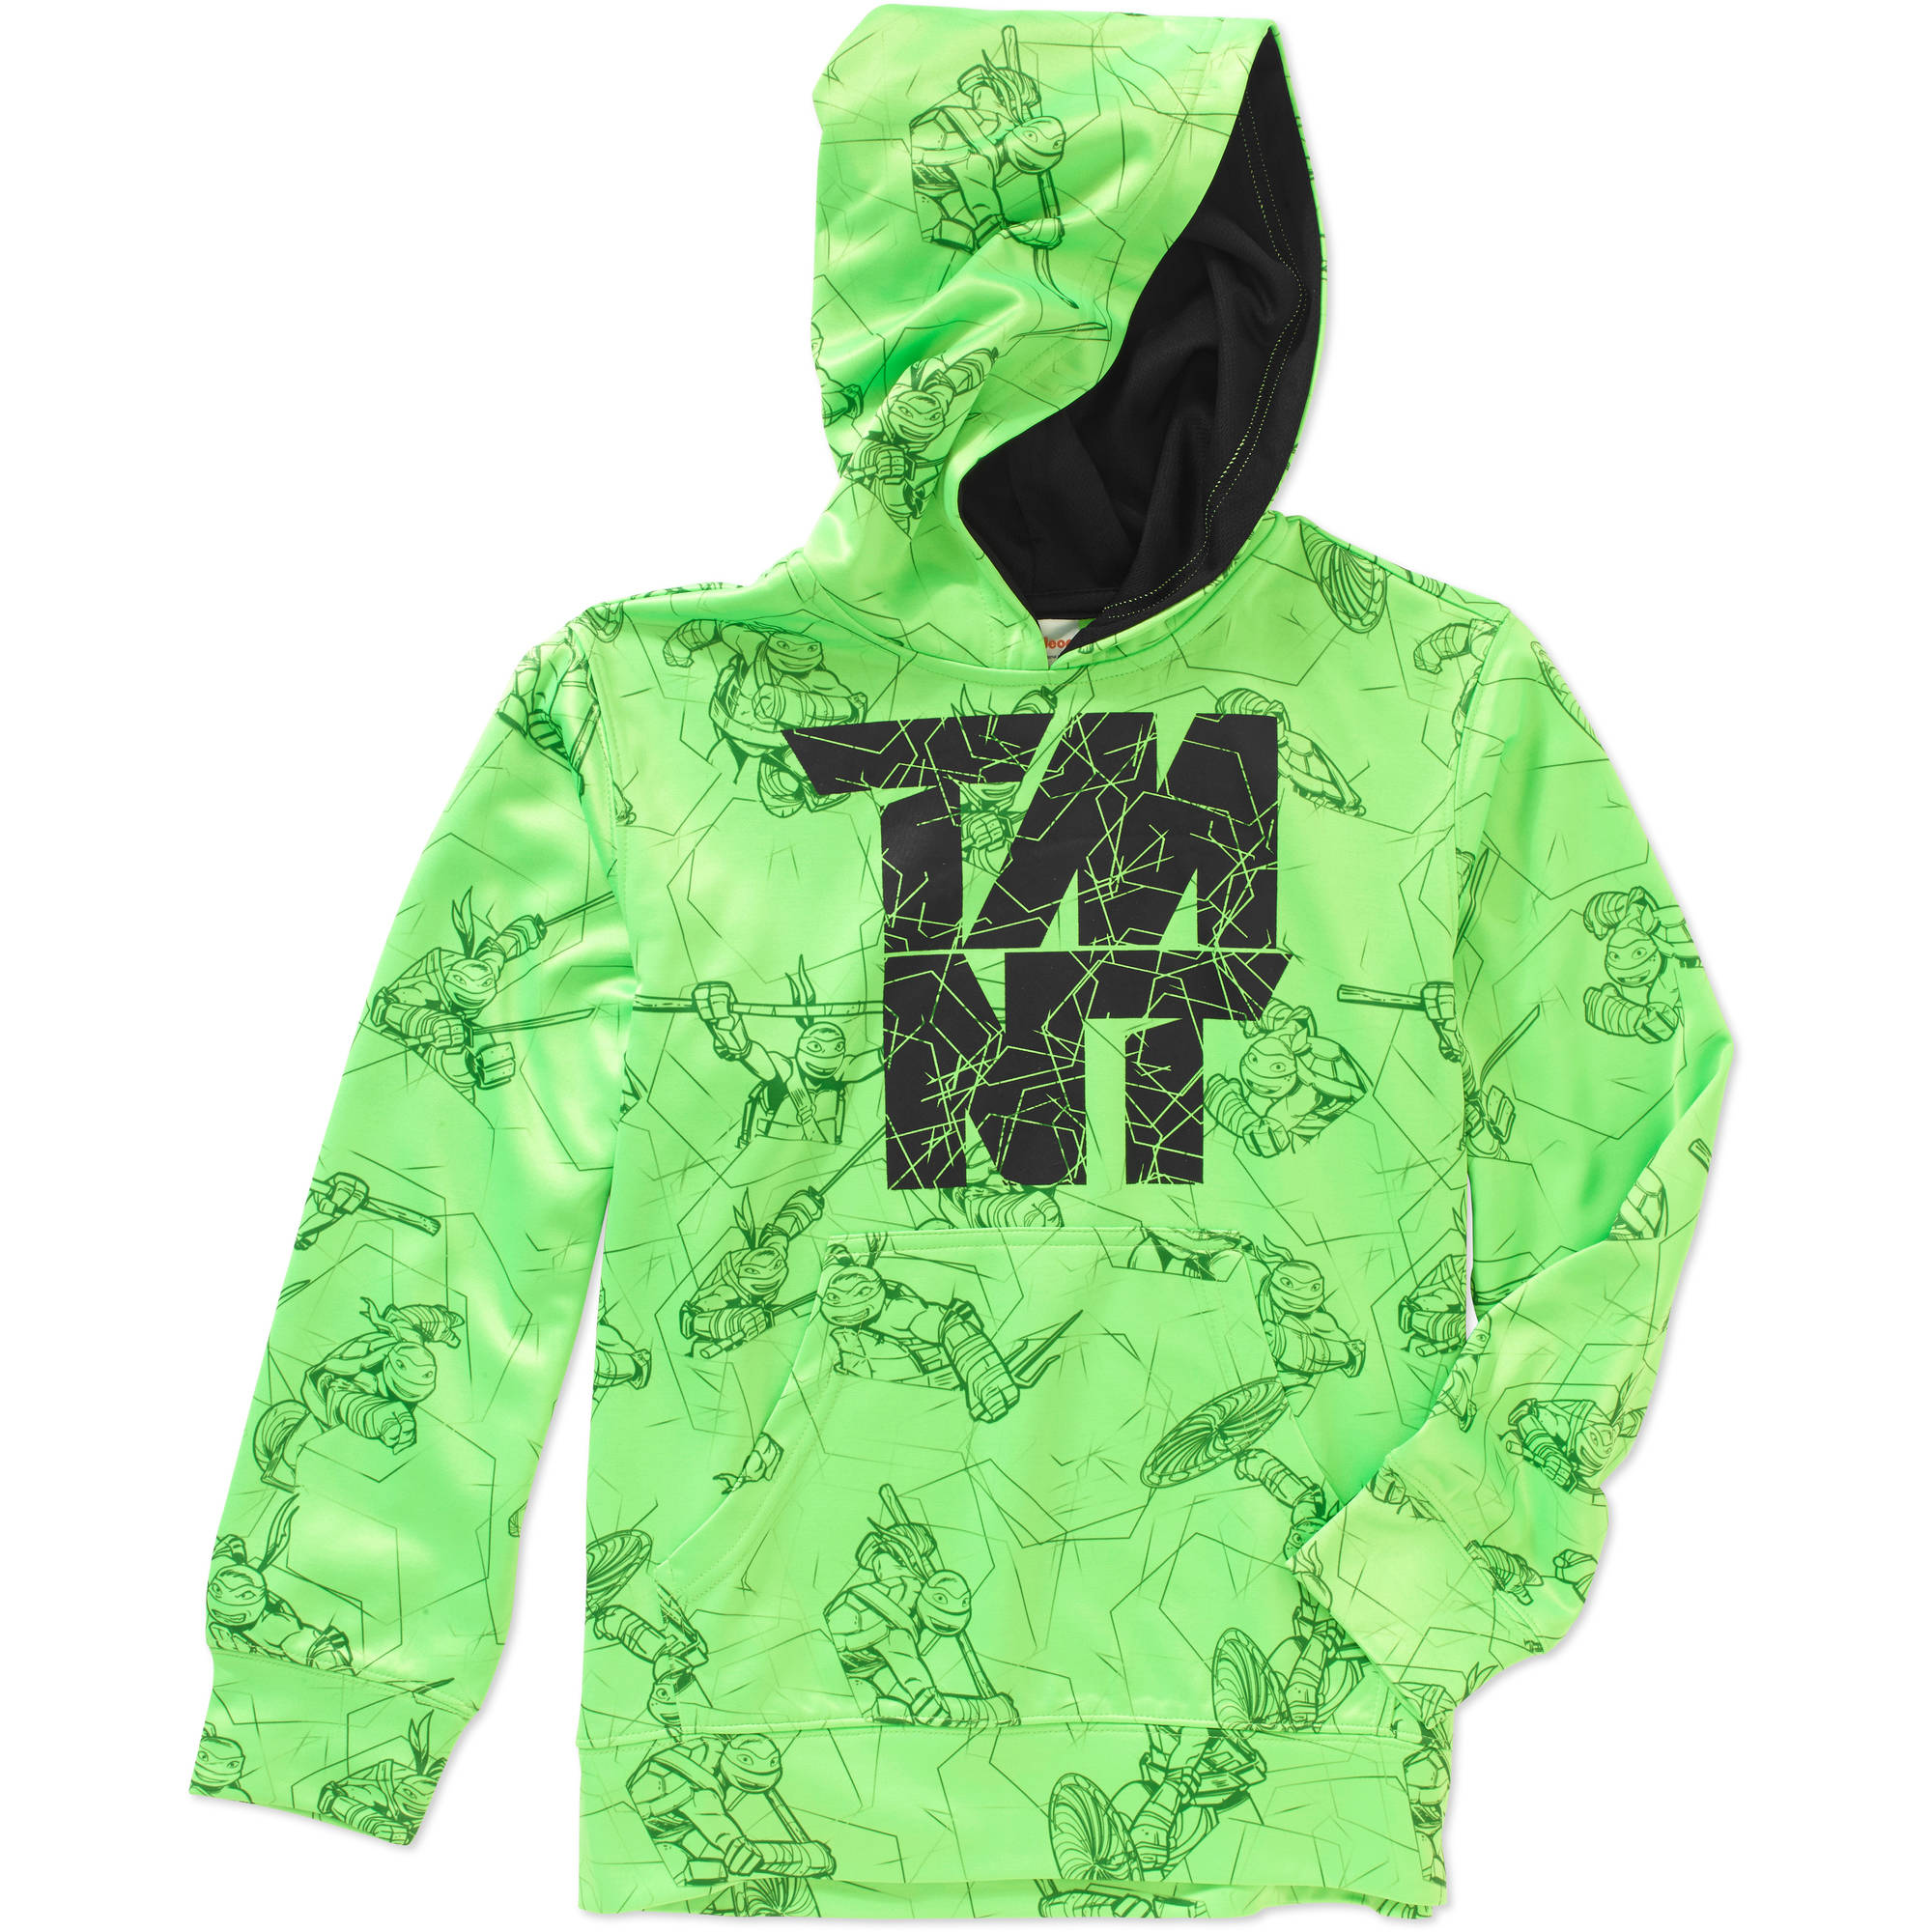 Teenage Mutant Ninja Turtles Boys' Sublimated Poly Fleece Hoodie